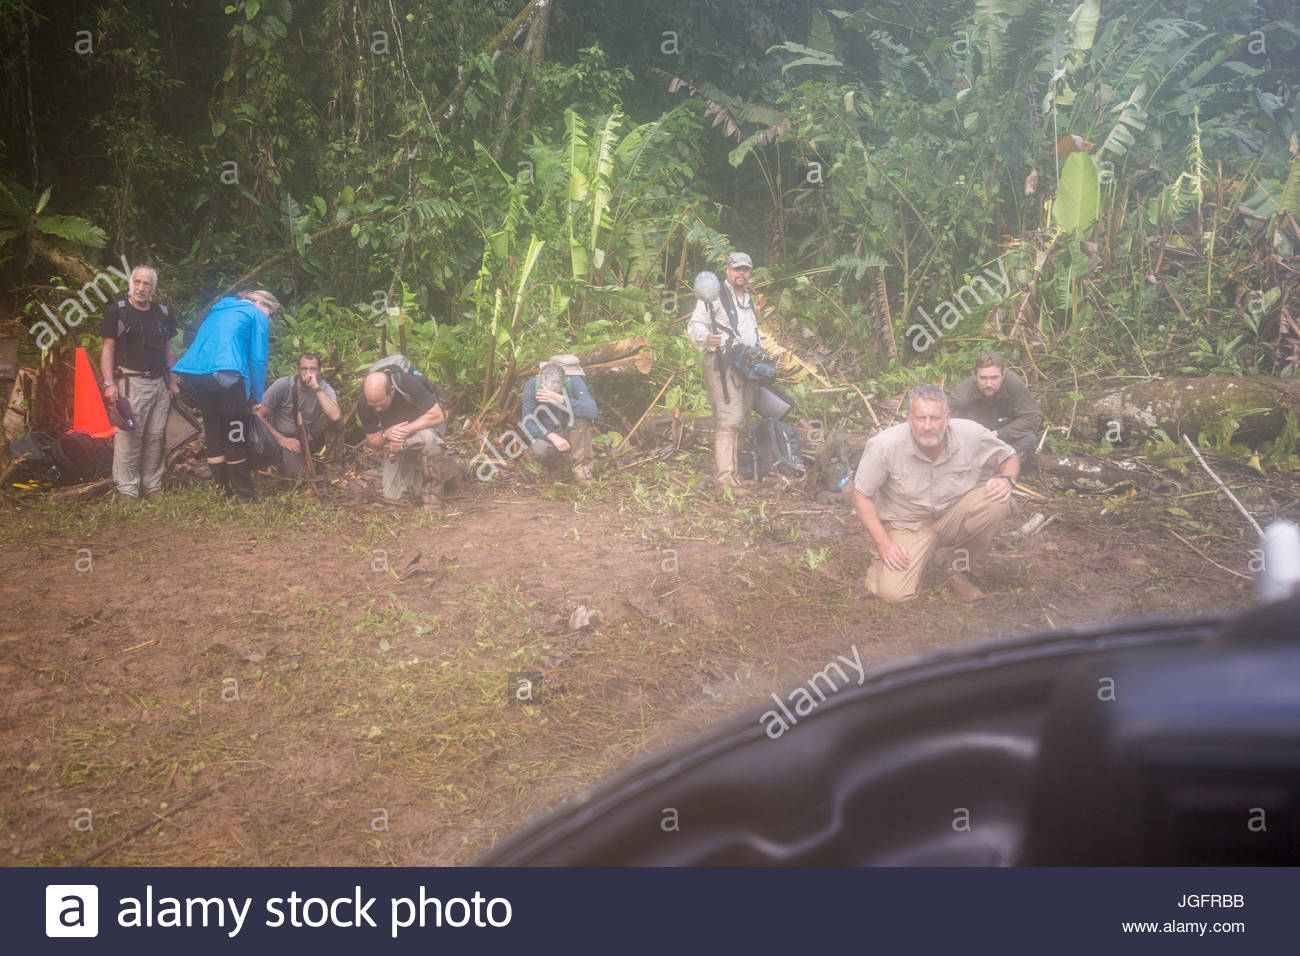 Team members of an expedition to explore the ruins of a pre-Colombian city in the Mosquitia jungle. - Stock Image